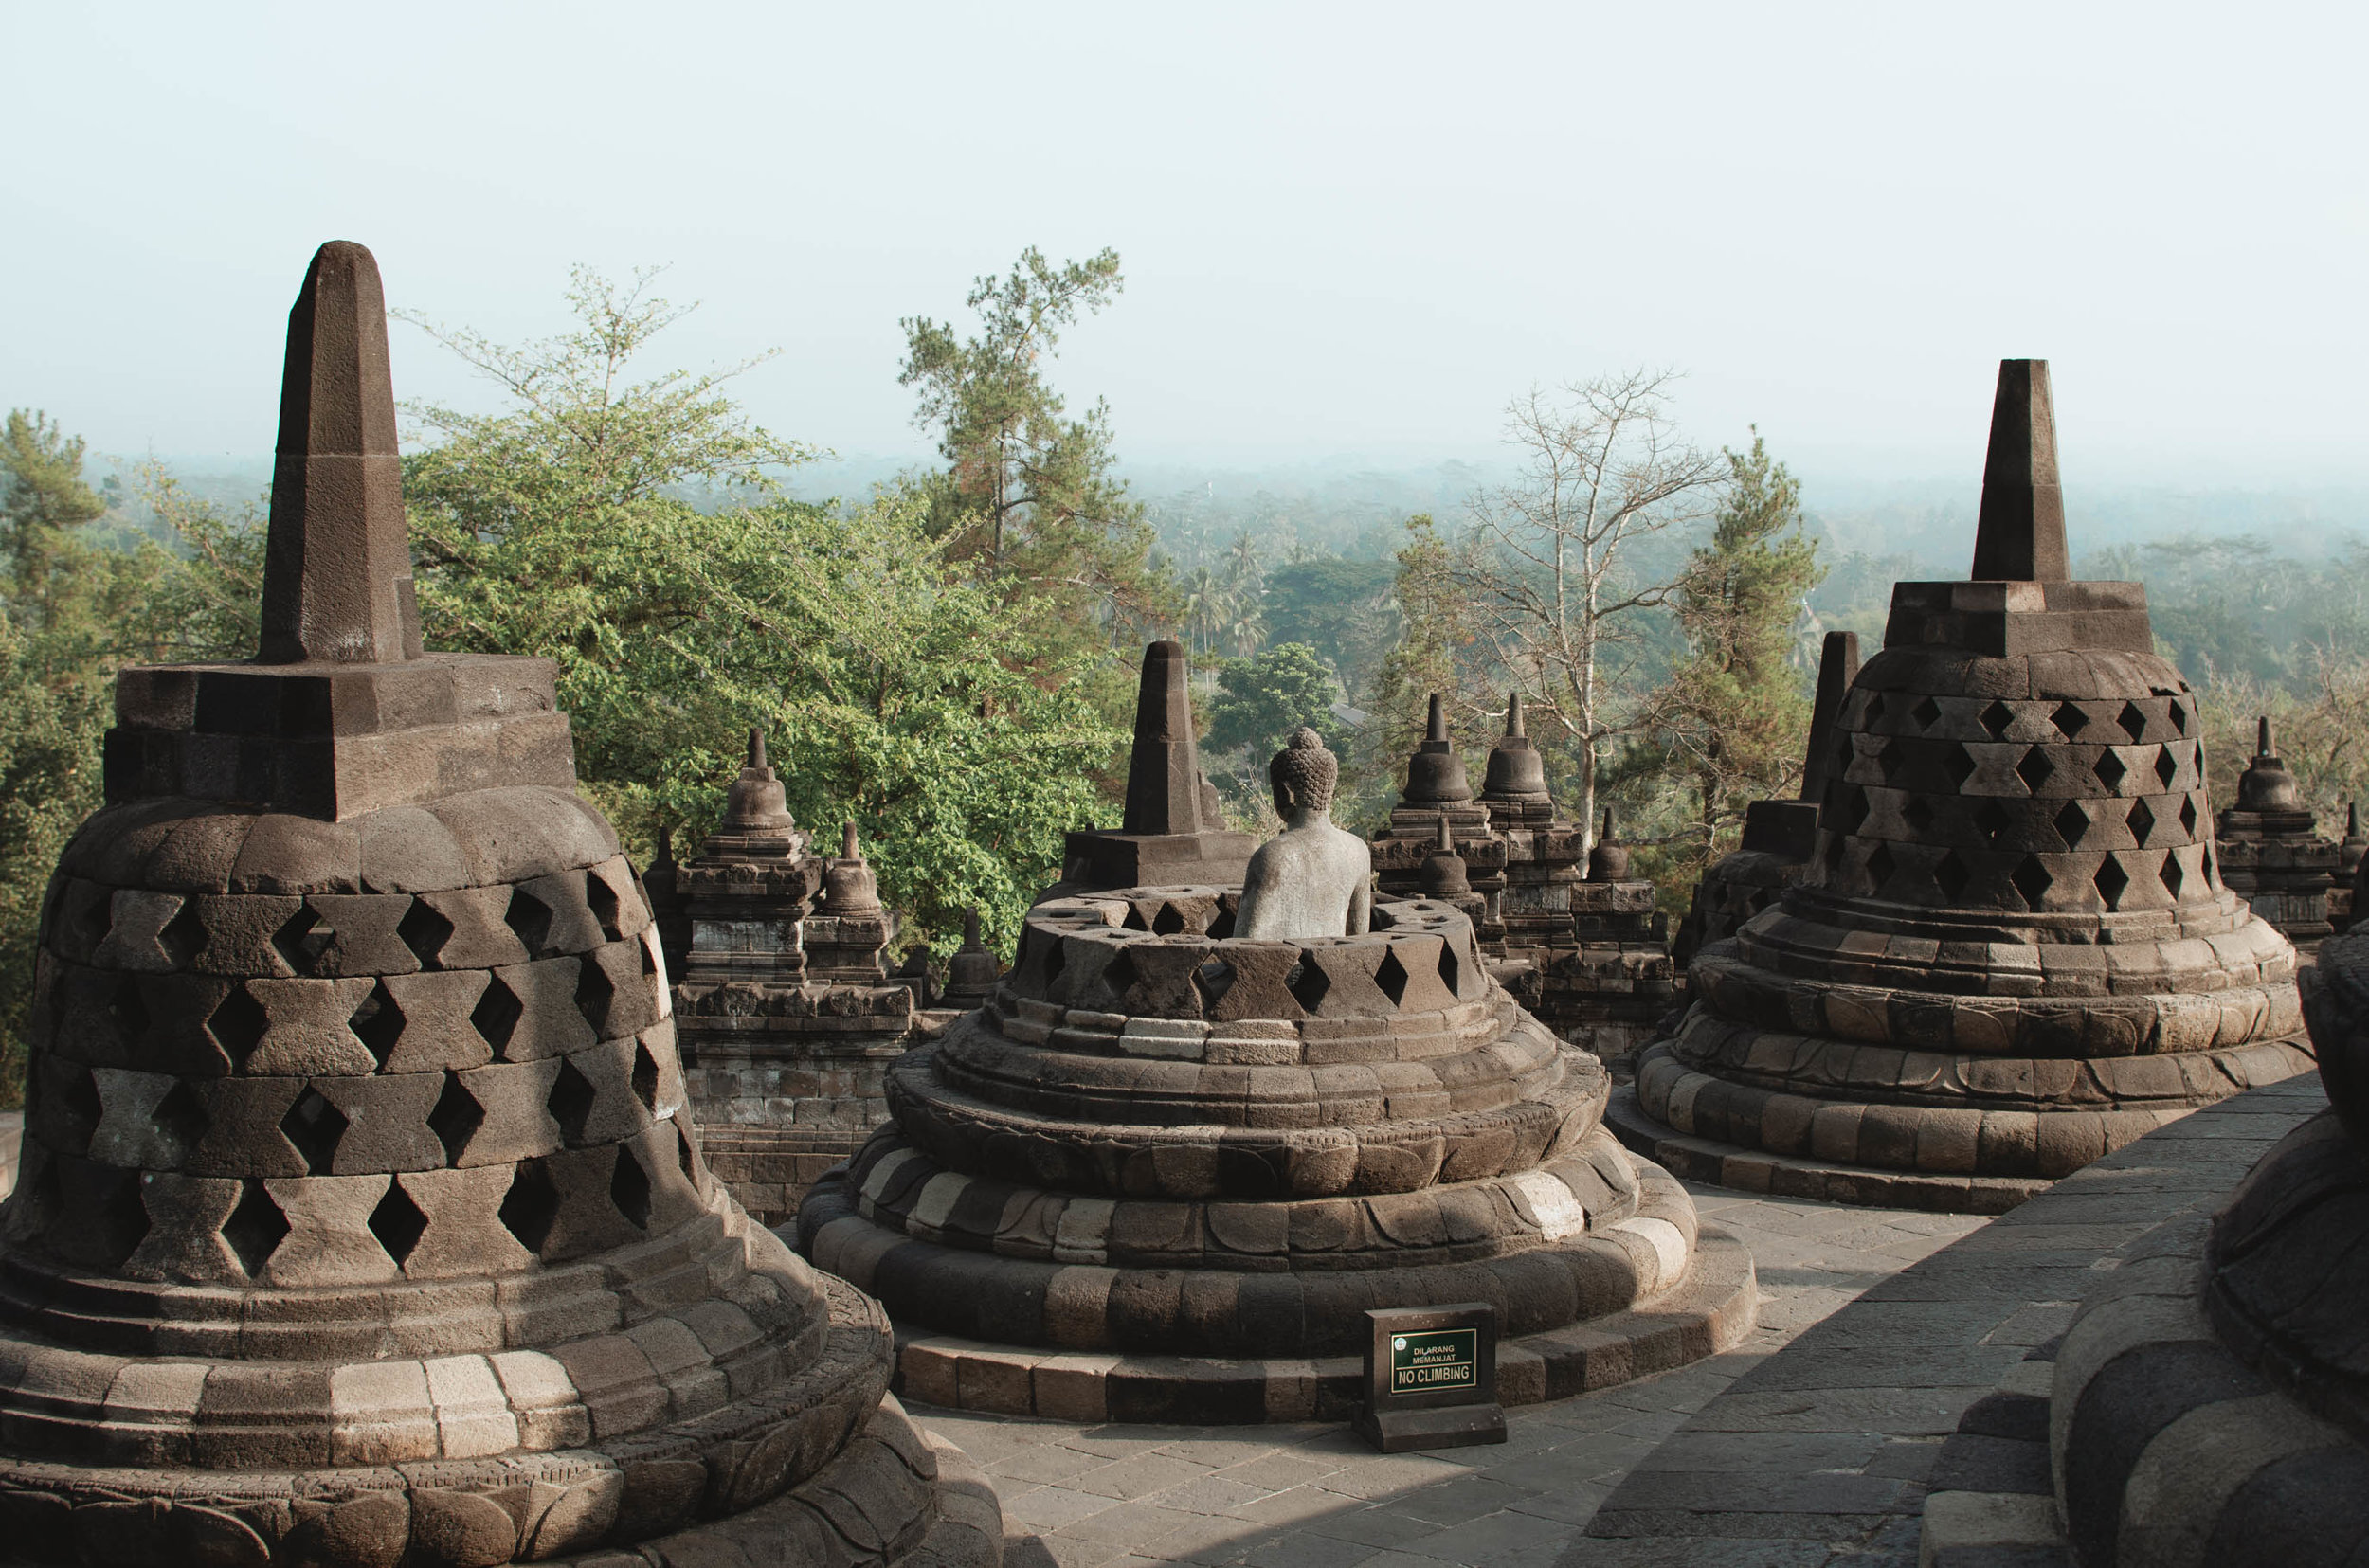 The famous bell-shaped structures and Buddha statues at Borobudur